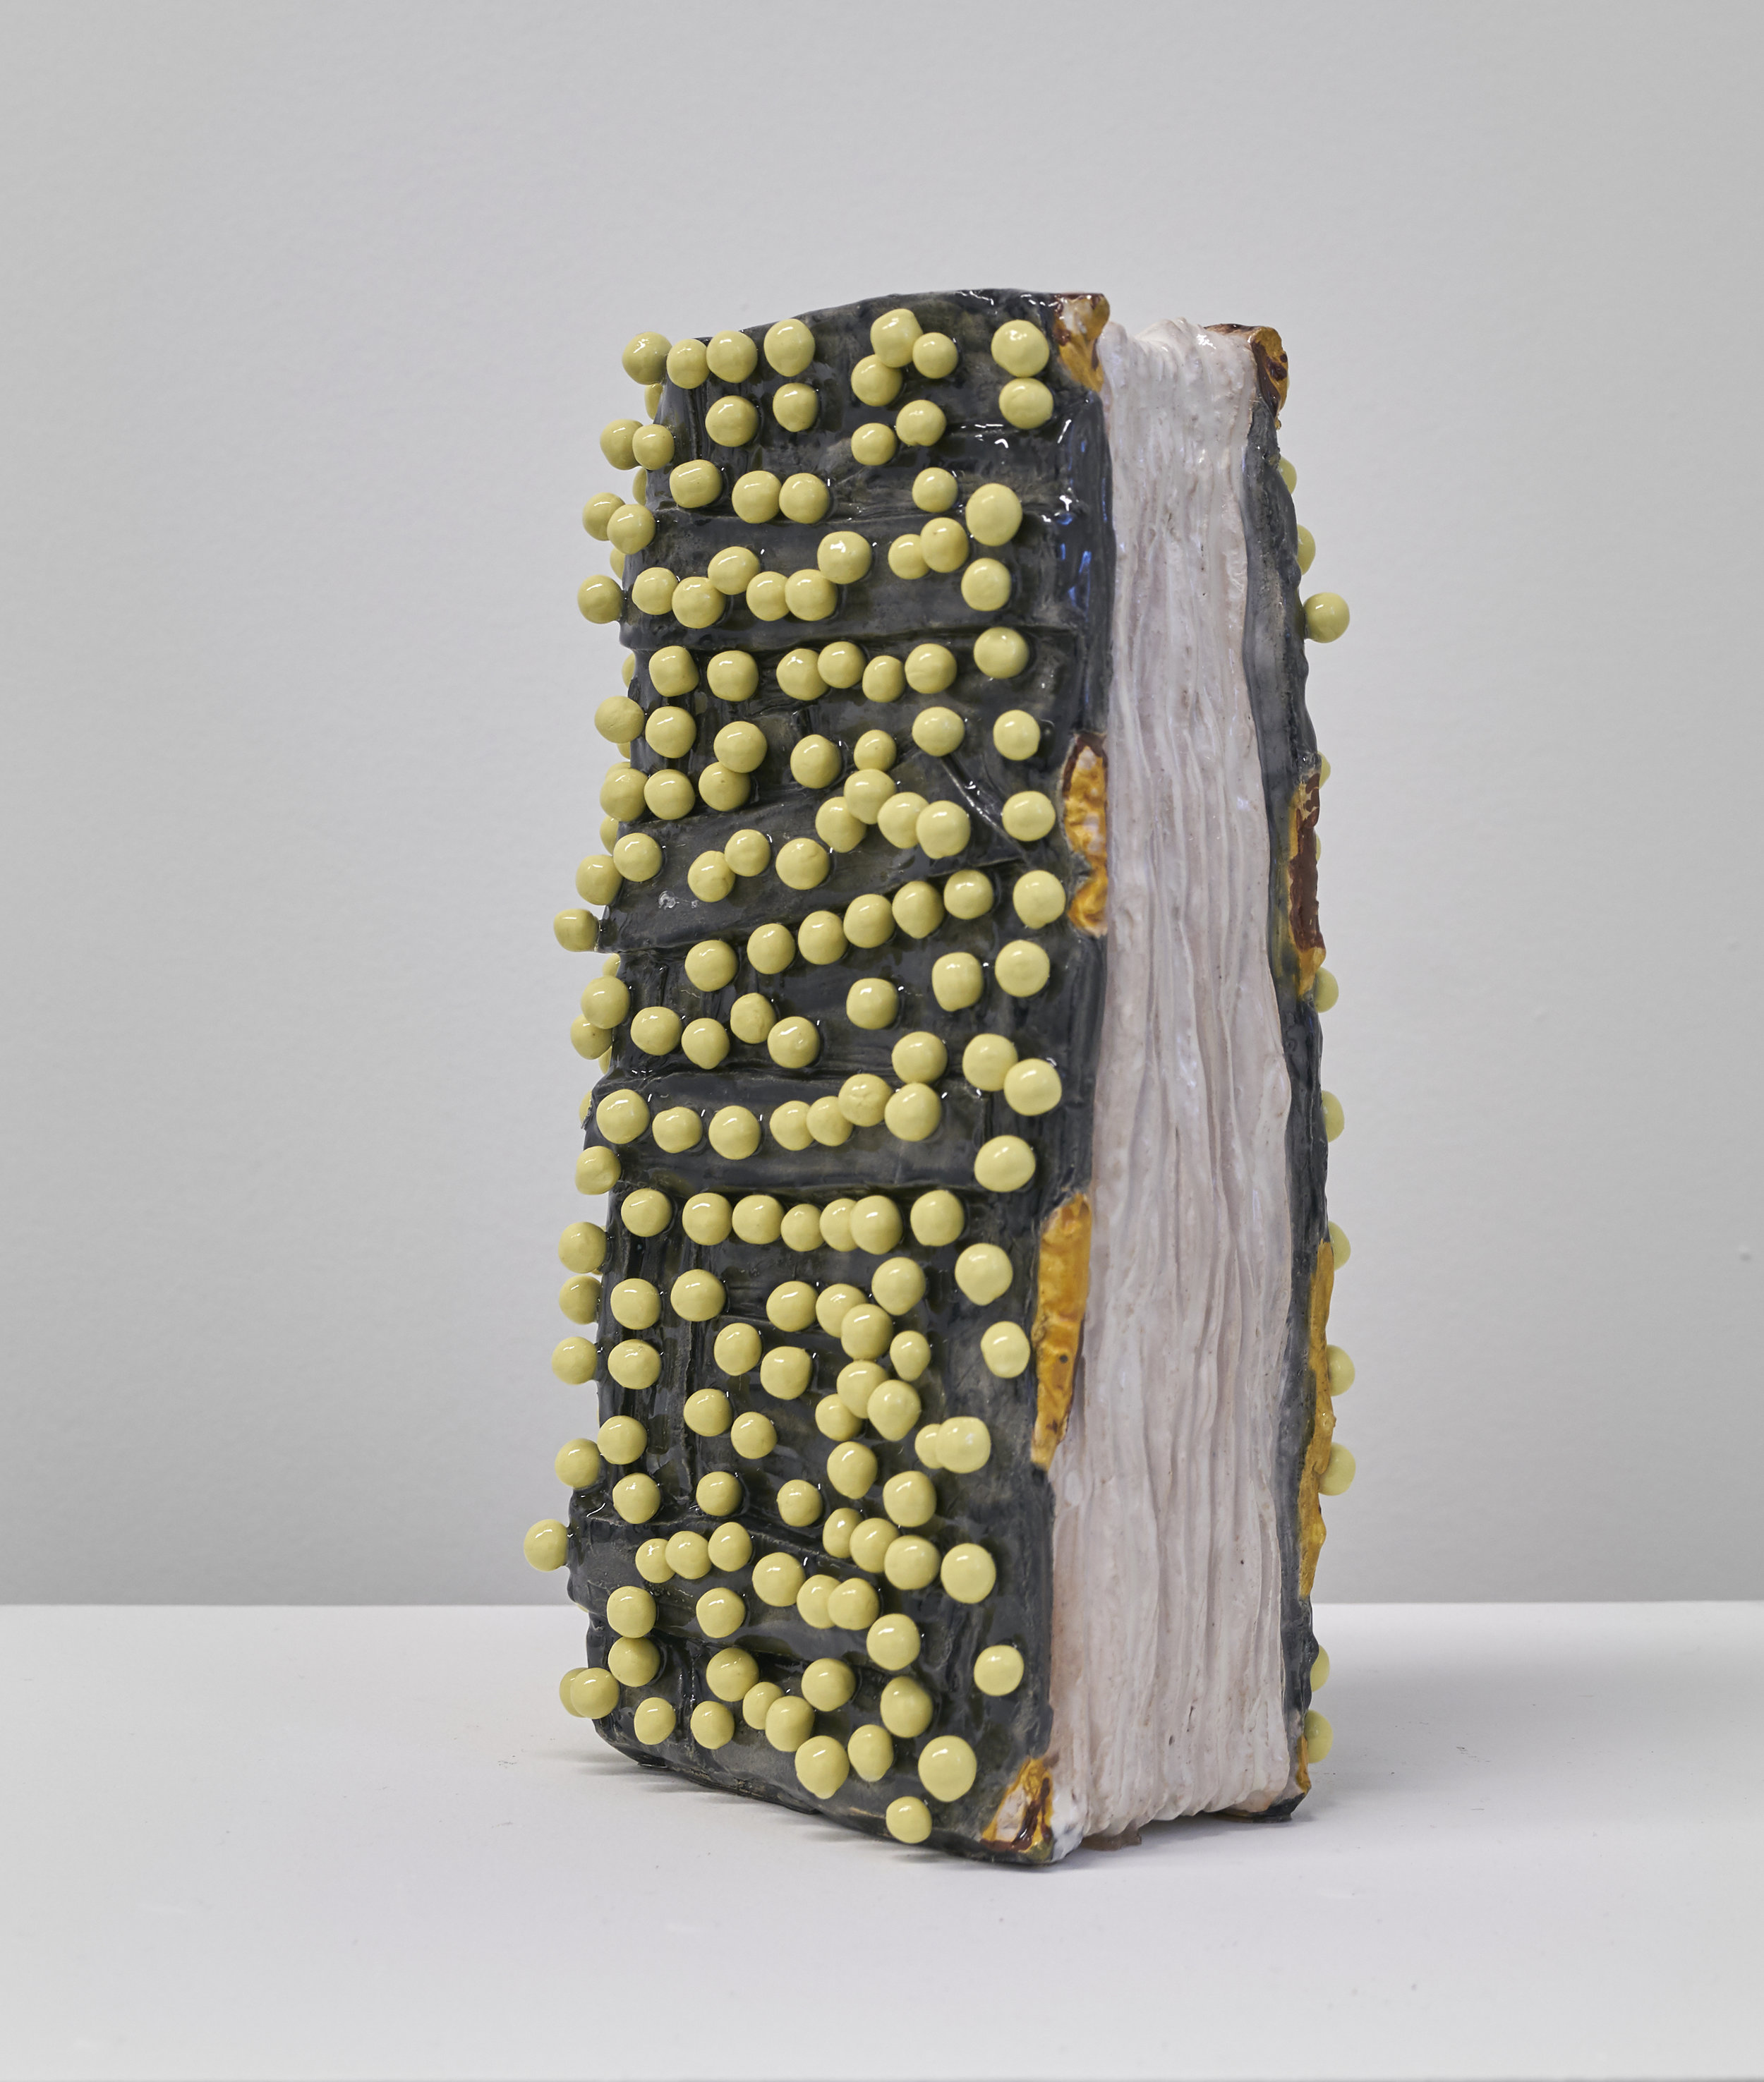 """Untitled   11"""" x 5"""" x 4"""" / Stoneware, Porcelain, Resin / 2018   Collaboration with Athena Witscher"""